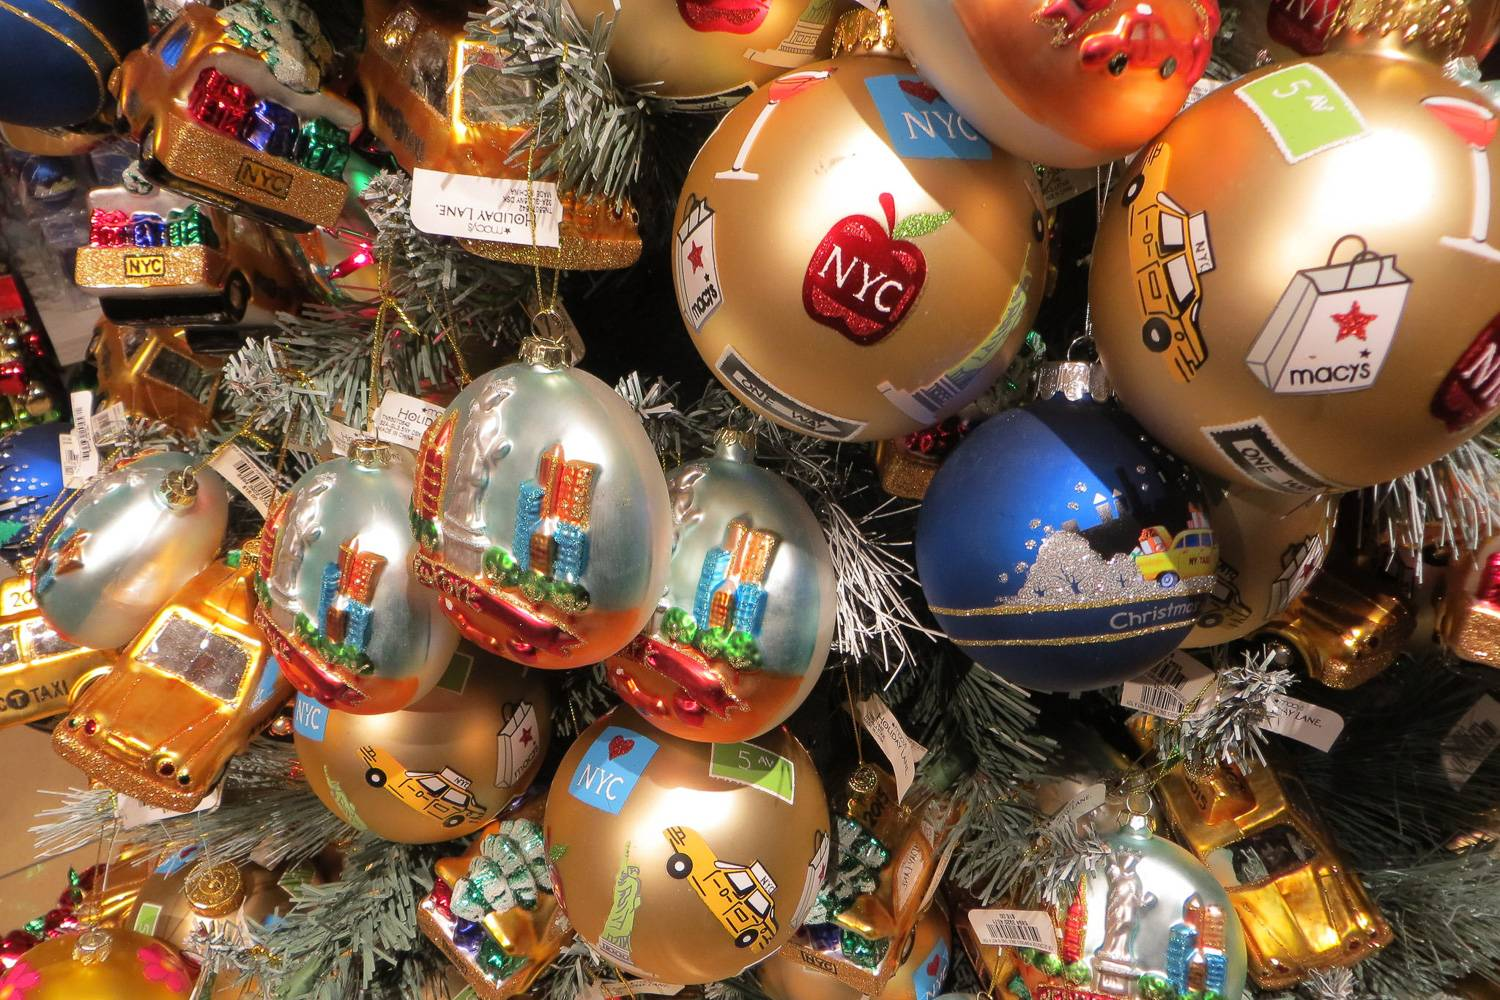 Image close-up of a Christmas tree with New York City-themed holiday ornaments.